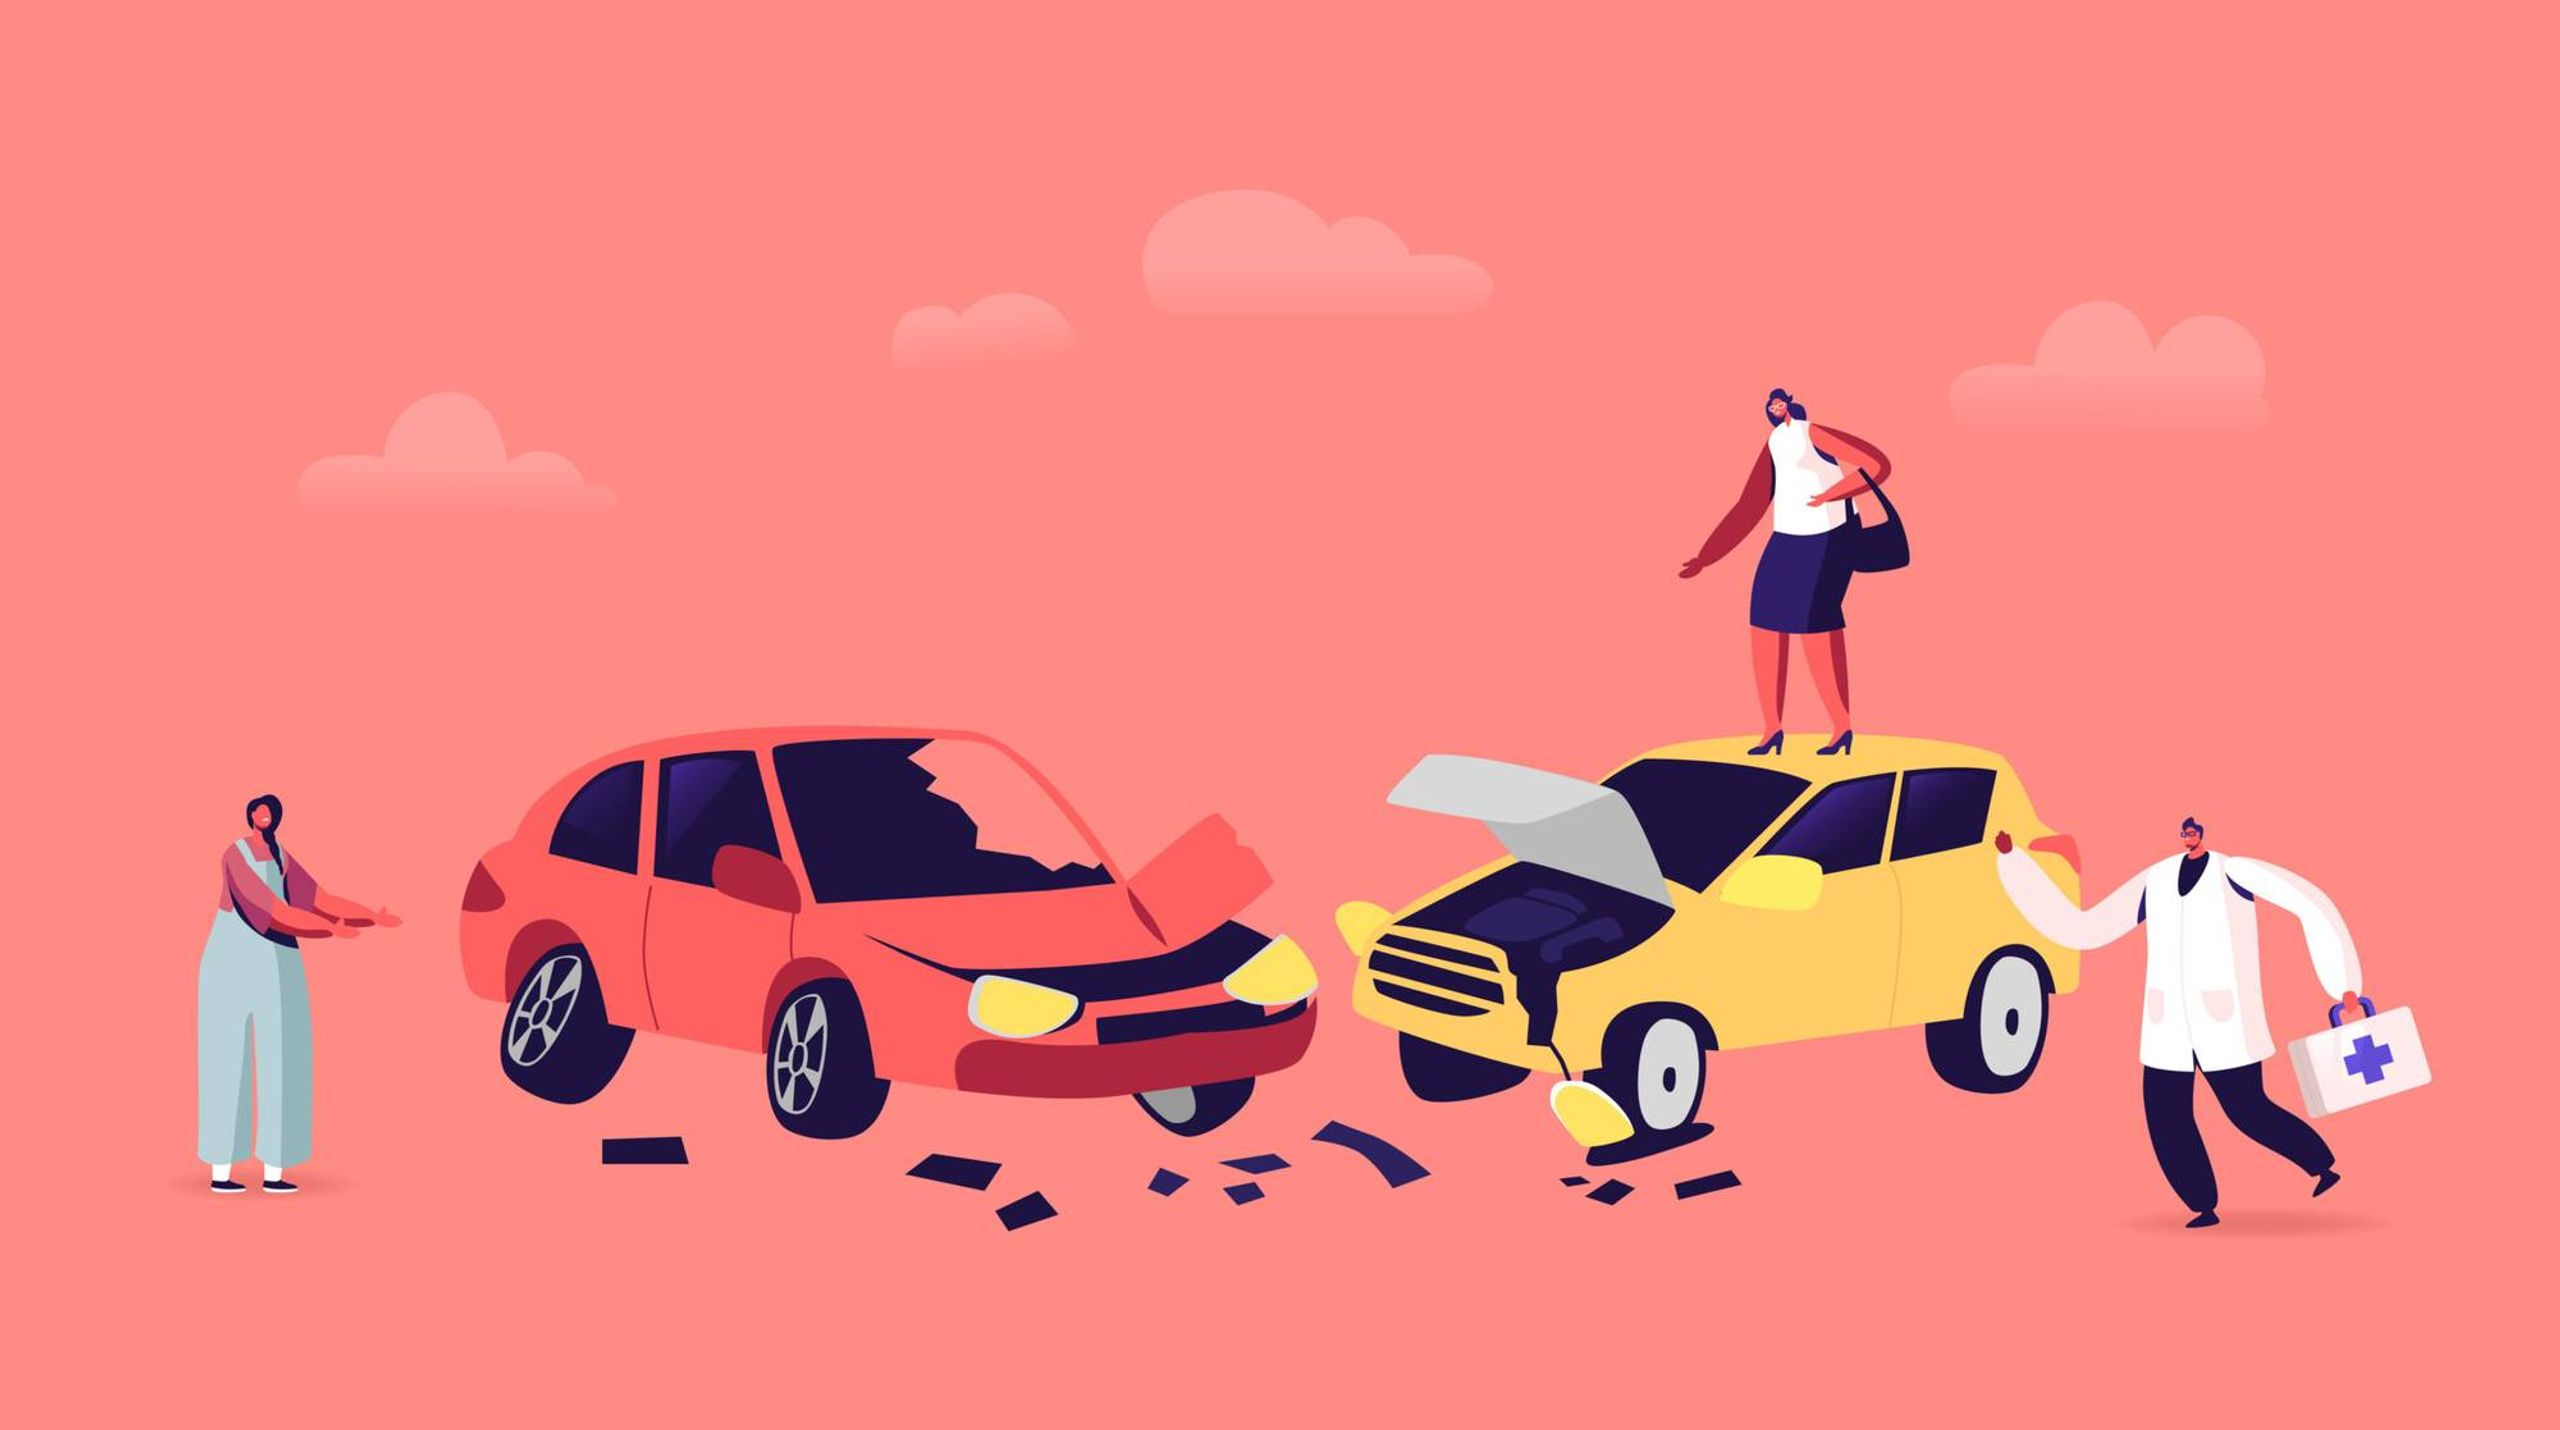 Illustration of a car accident with two drivers arguing about their damaged cars and a doctor running to the scene, car crashes